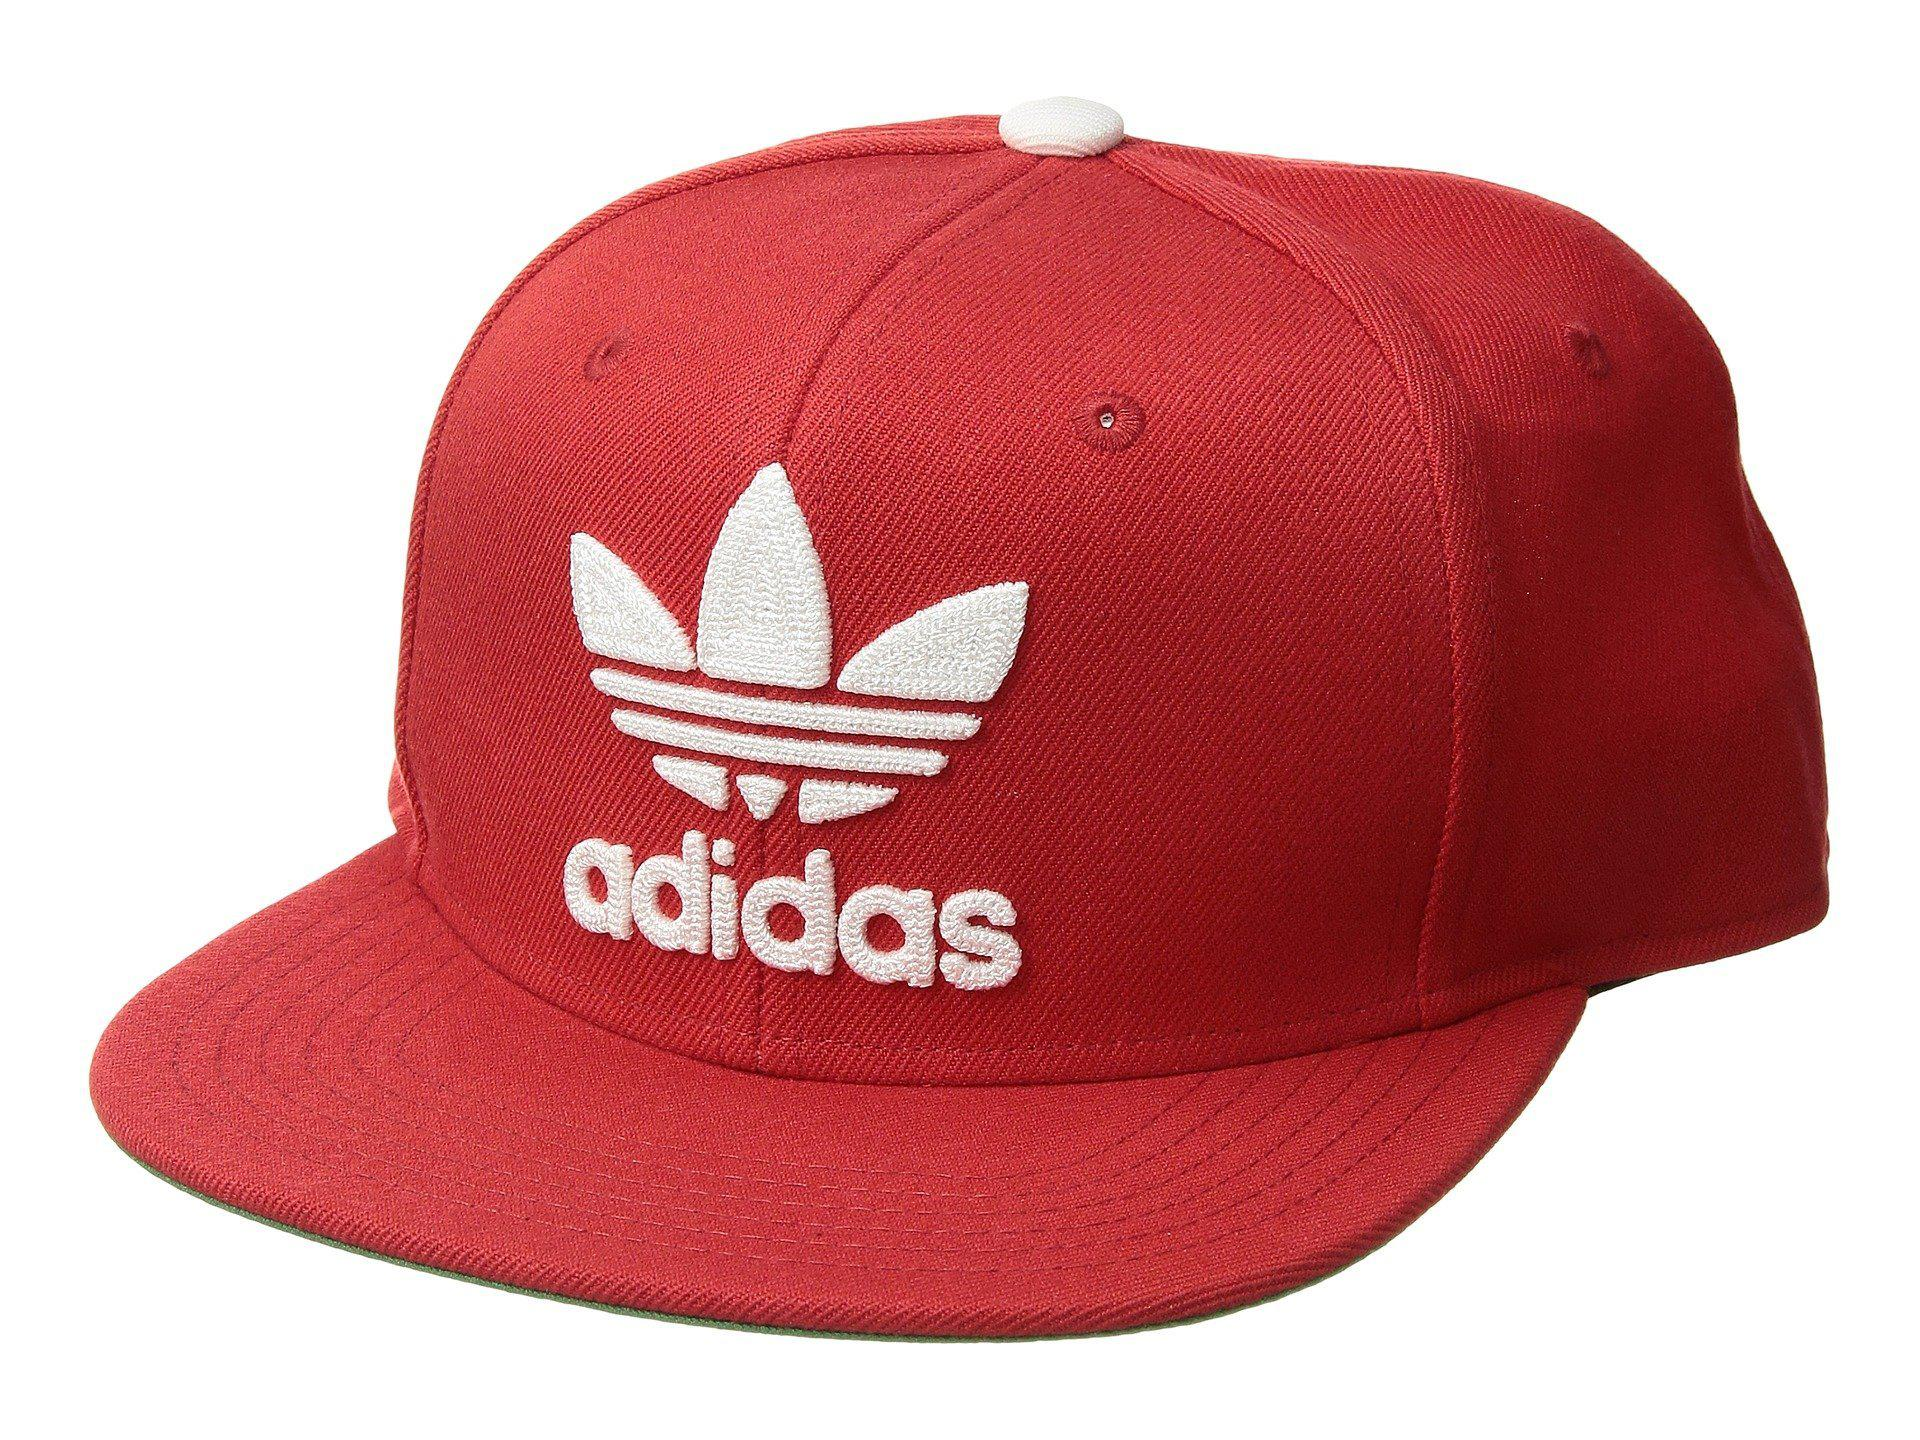 ... uk adidas originals. mens red originals trefoil chain snapback cap  f5a56 a5852 186bffa0fe3d